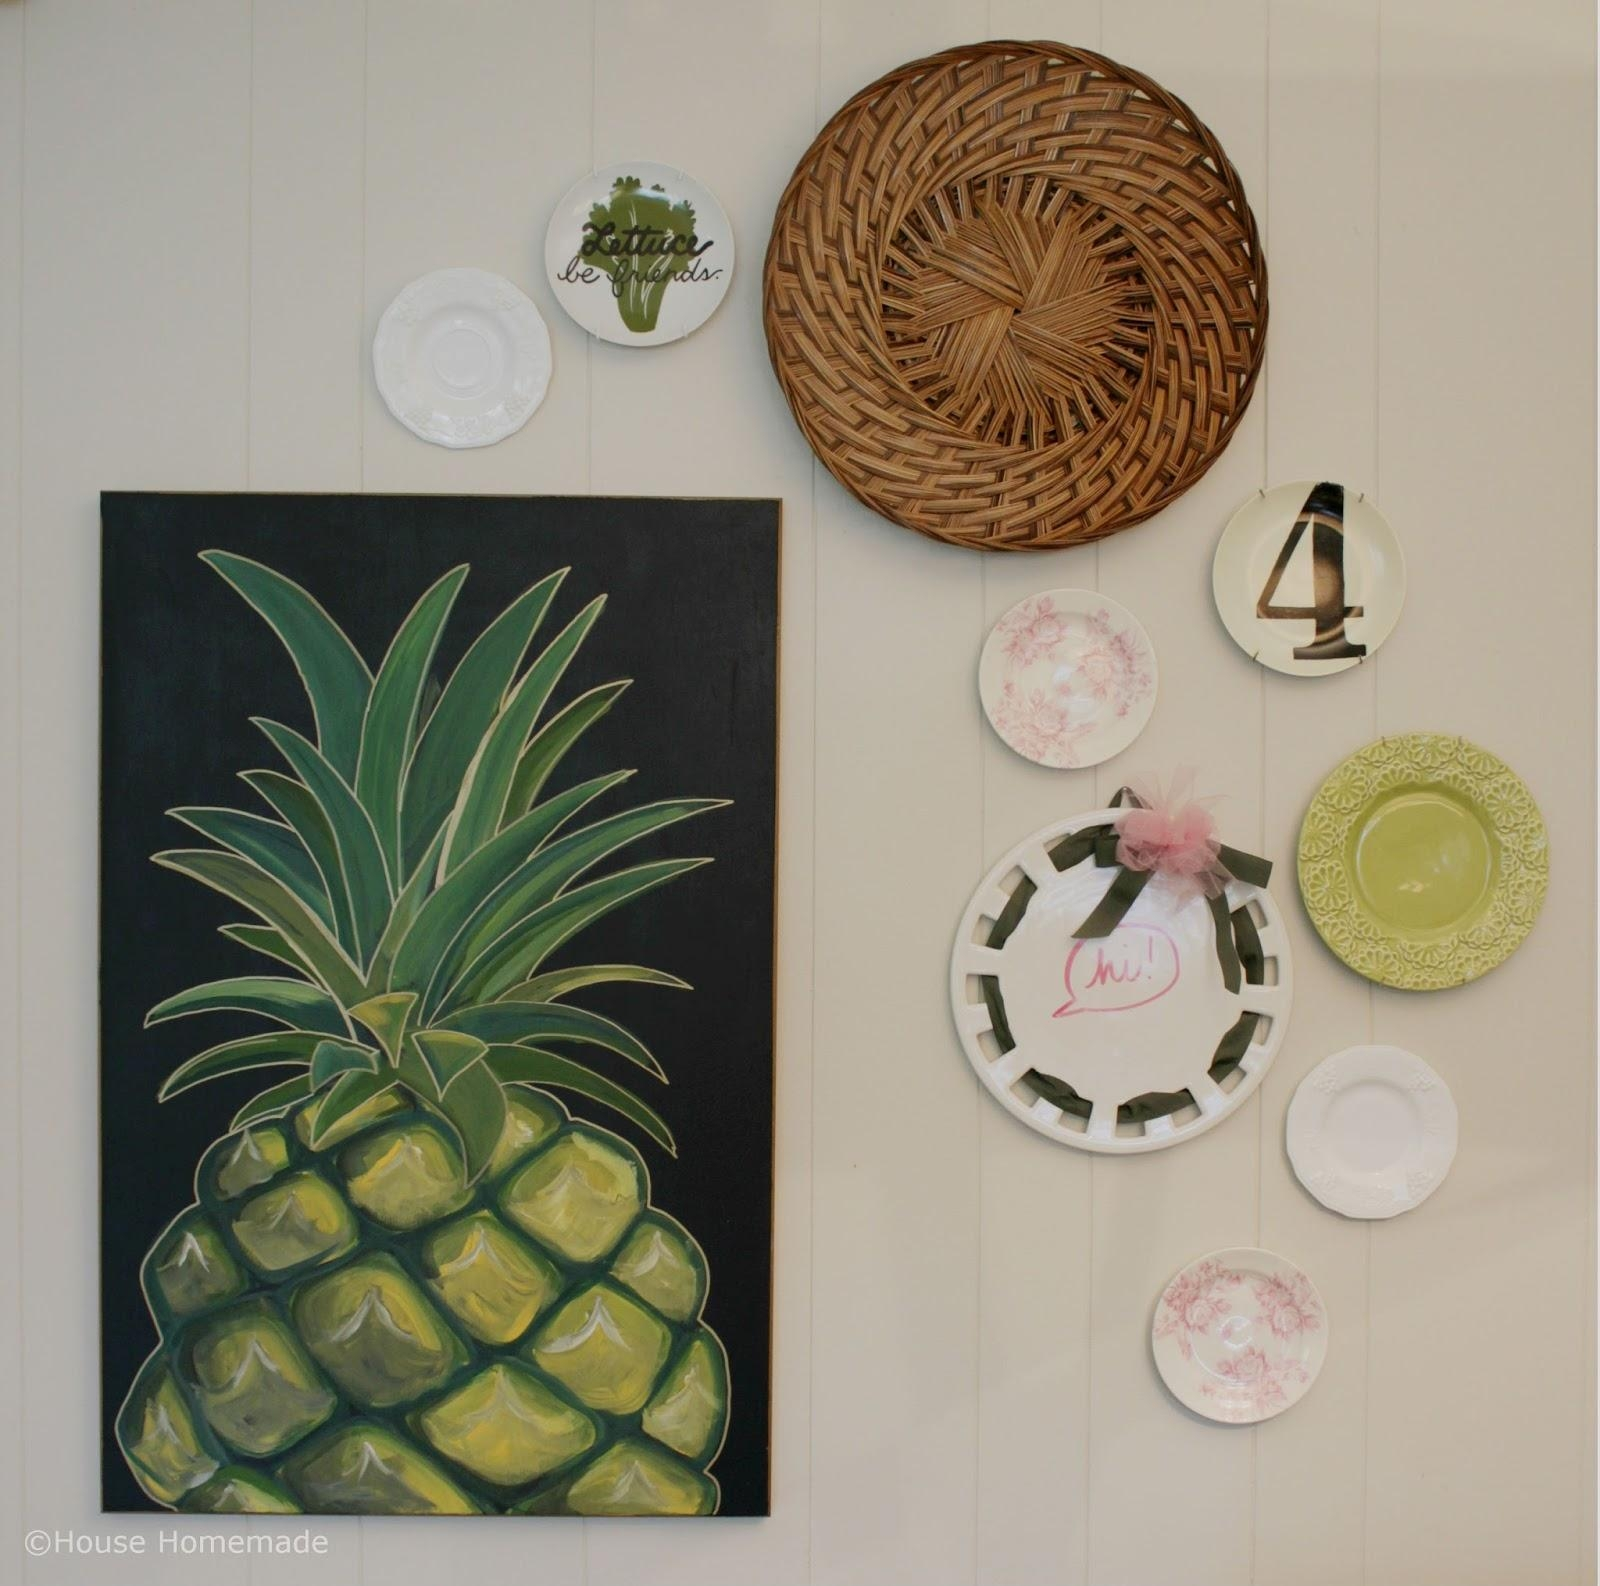 House Homemade: How To Turn Decor Into Wall Art Pertaining To Turn Pictures Into Wall Art (Image 5 of 20)